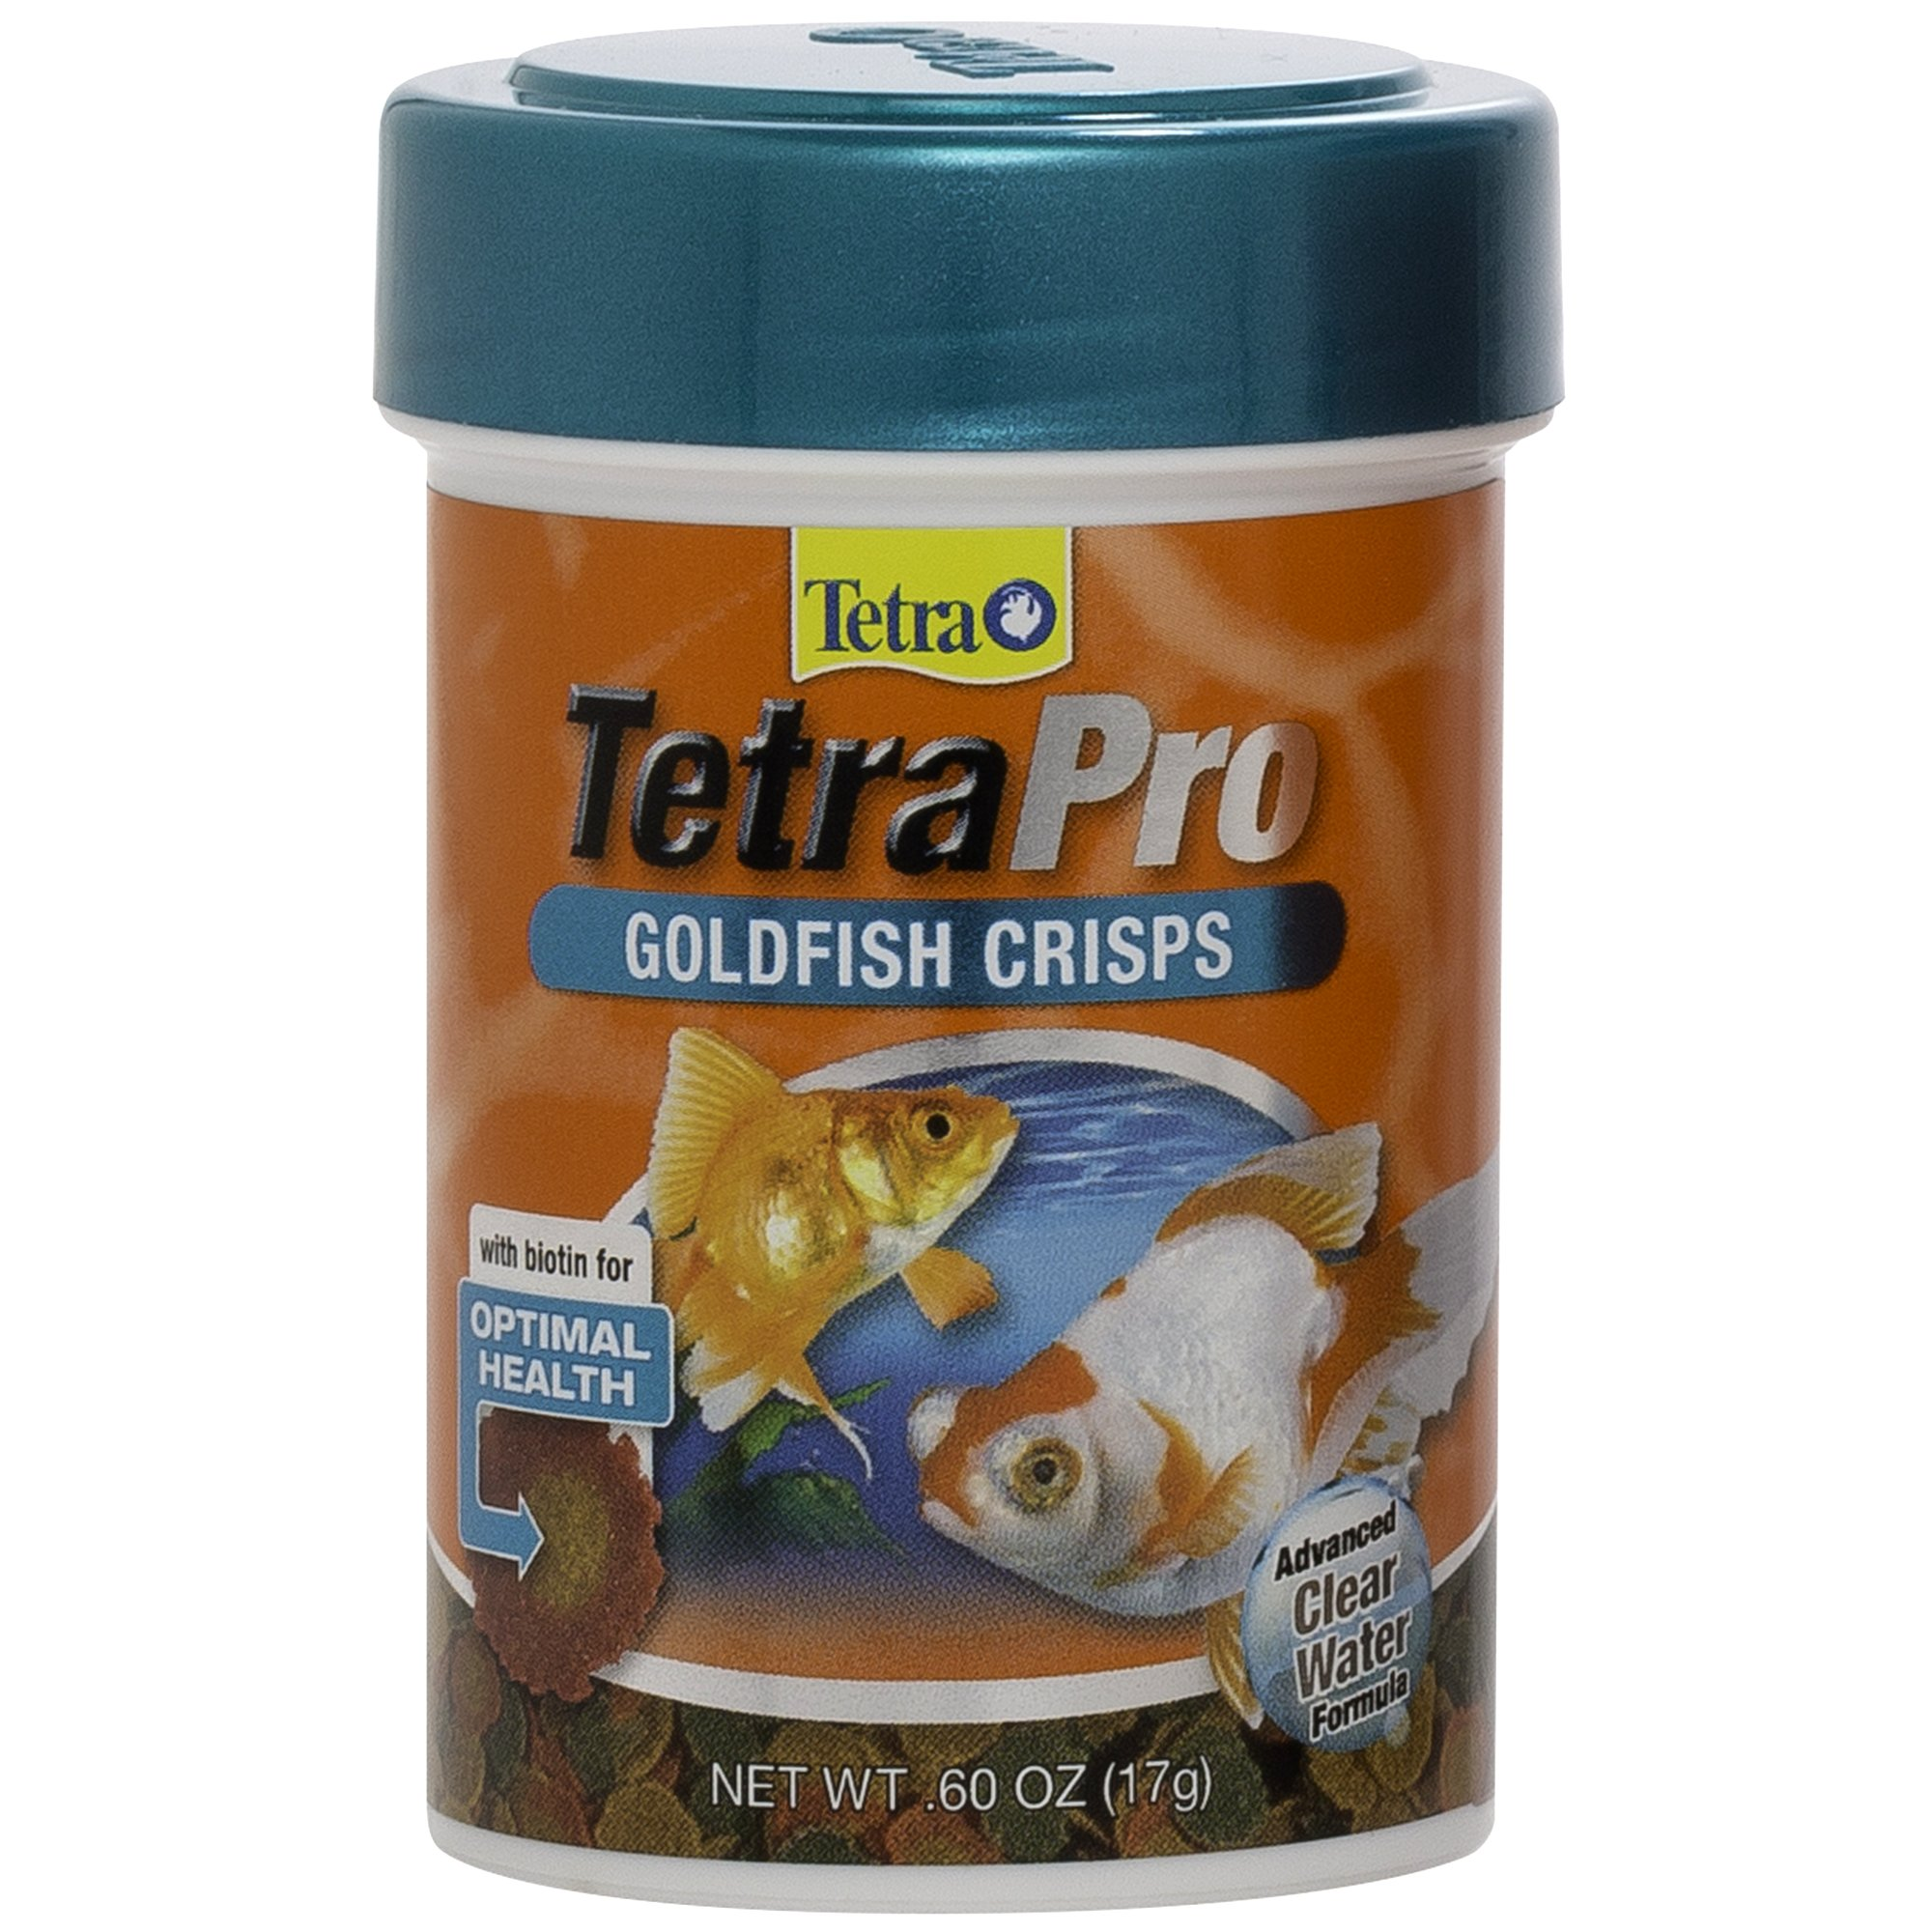 Tetra TetraPro Goldfish Crisps Fish Food, 0.6-oz